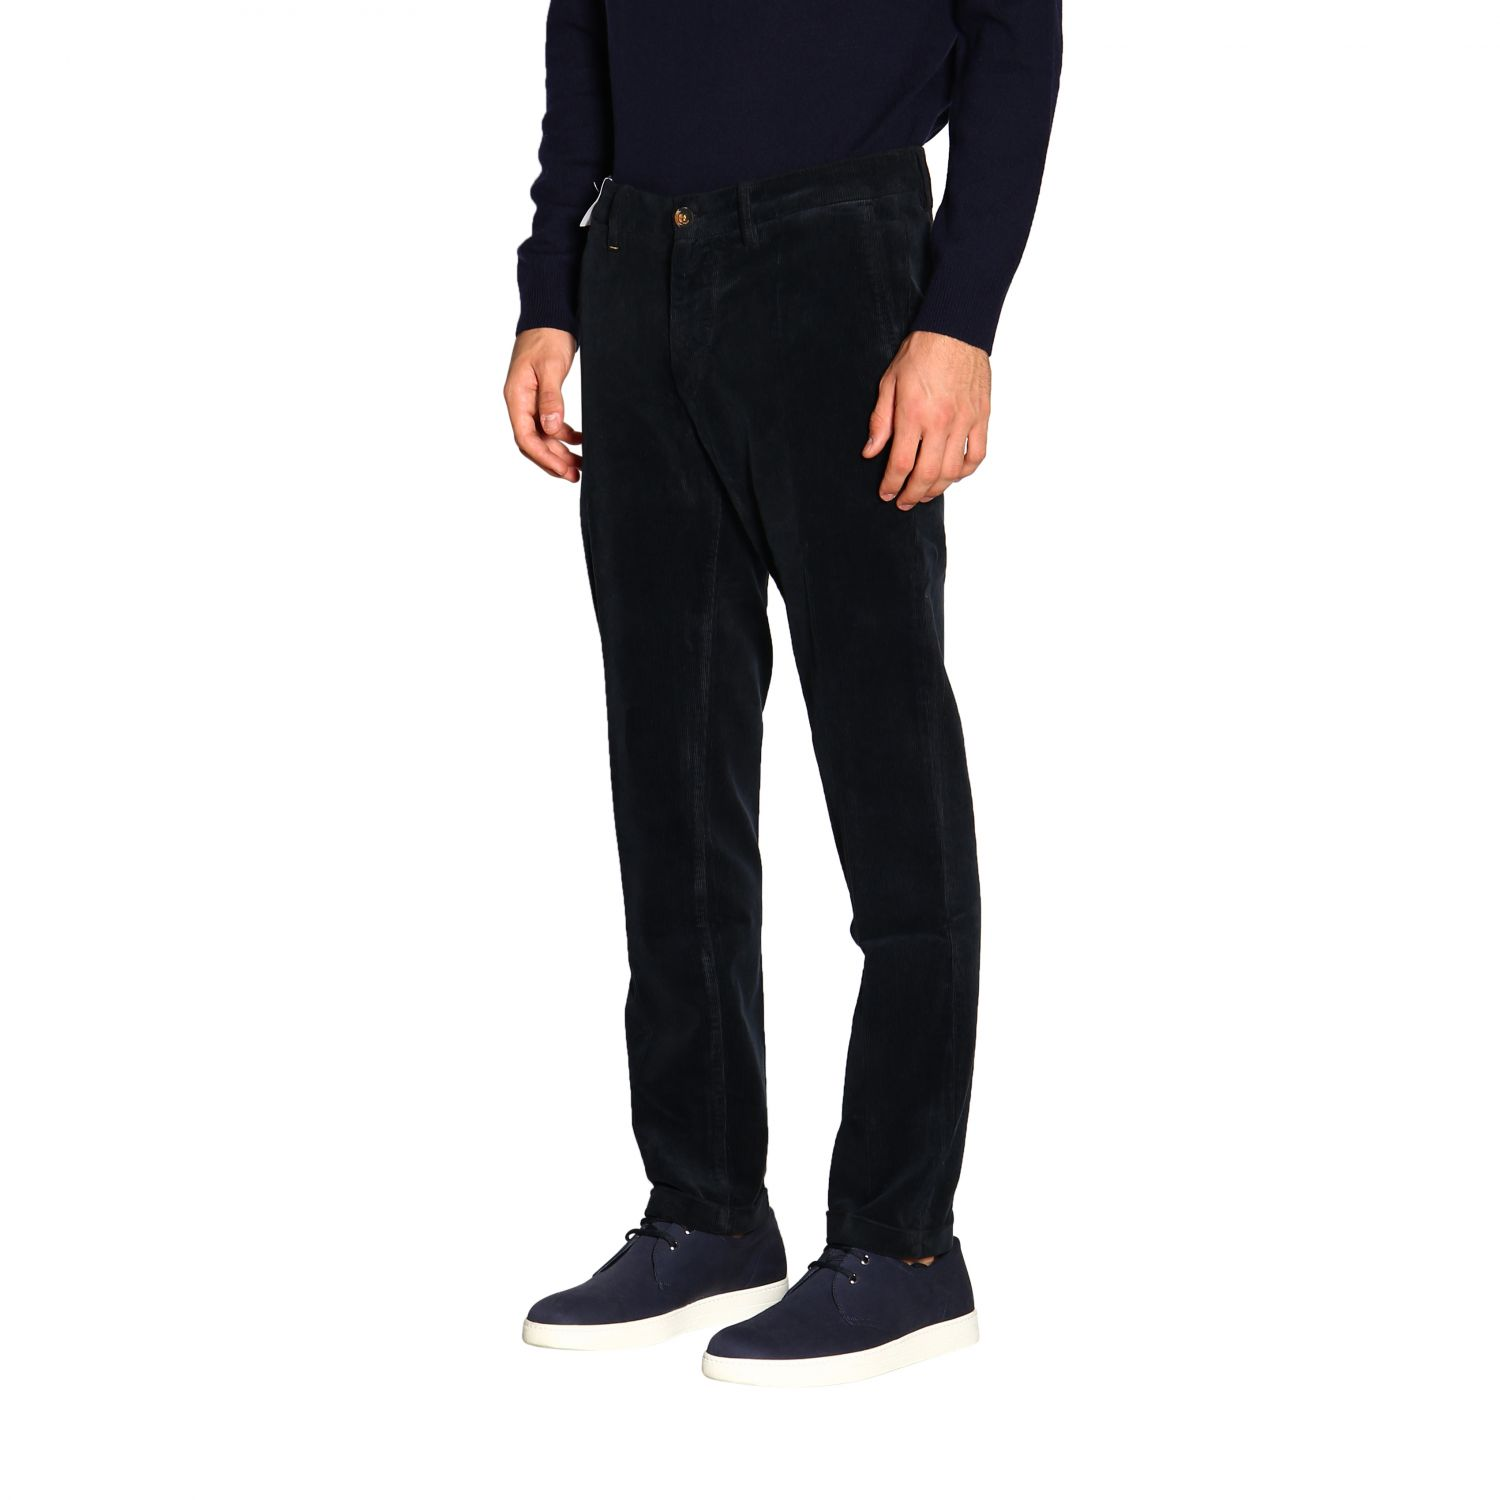 Pants men Re-hash blue 4